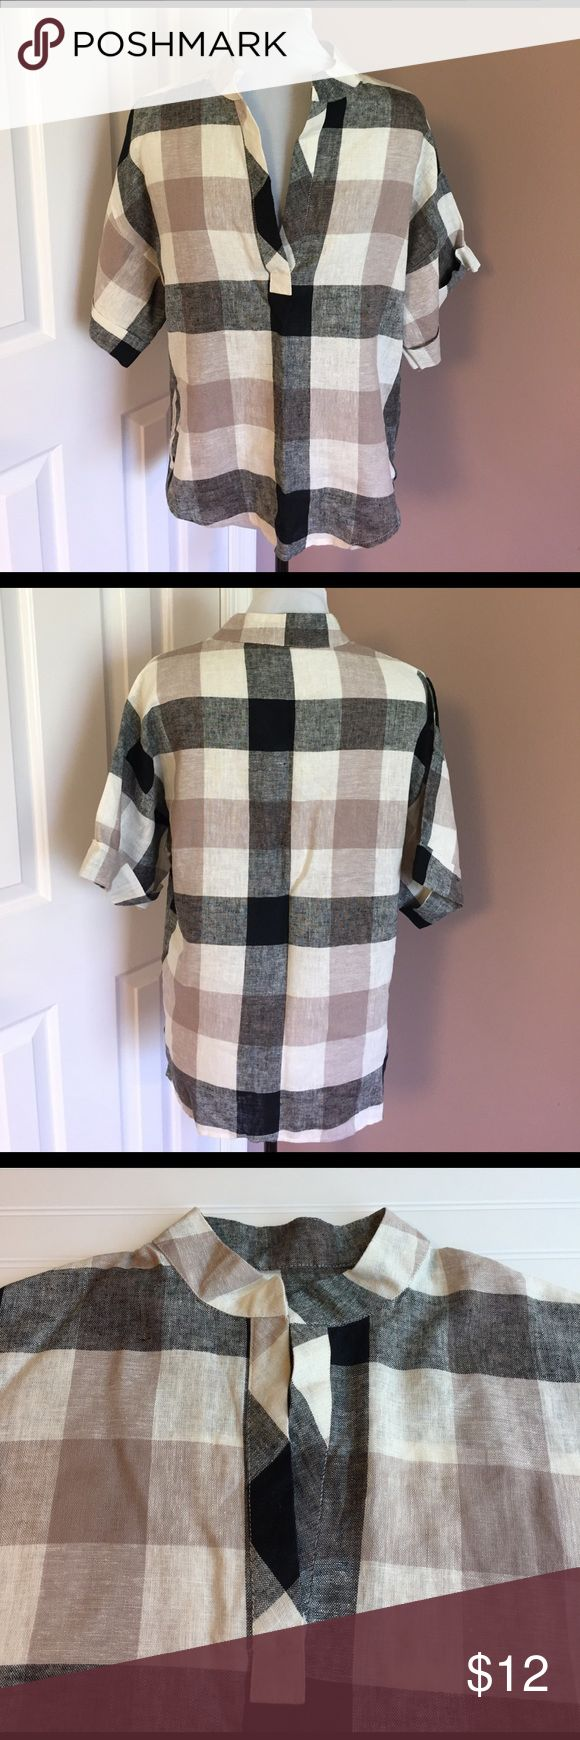 Linen Buffalo Check Top Beautiful buffalo check top.  Black, Tan and white pattern in linen fabric.  Mandarin collat.  8 in split placket. Short sleeves with cuff.  Top is 25 in long in front, 2 in longer in back.  Bust is 42in. As are the hips for a loose fit. Never worn. Perfect condition.  Smoke free. Tops